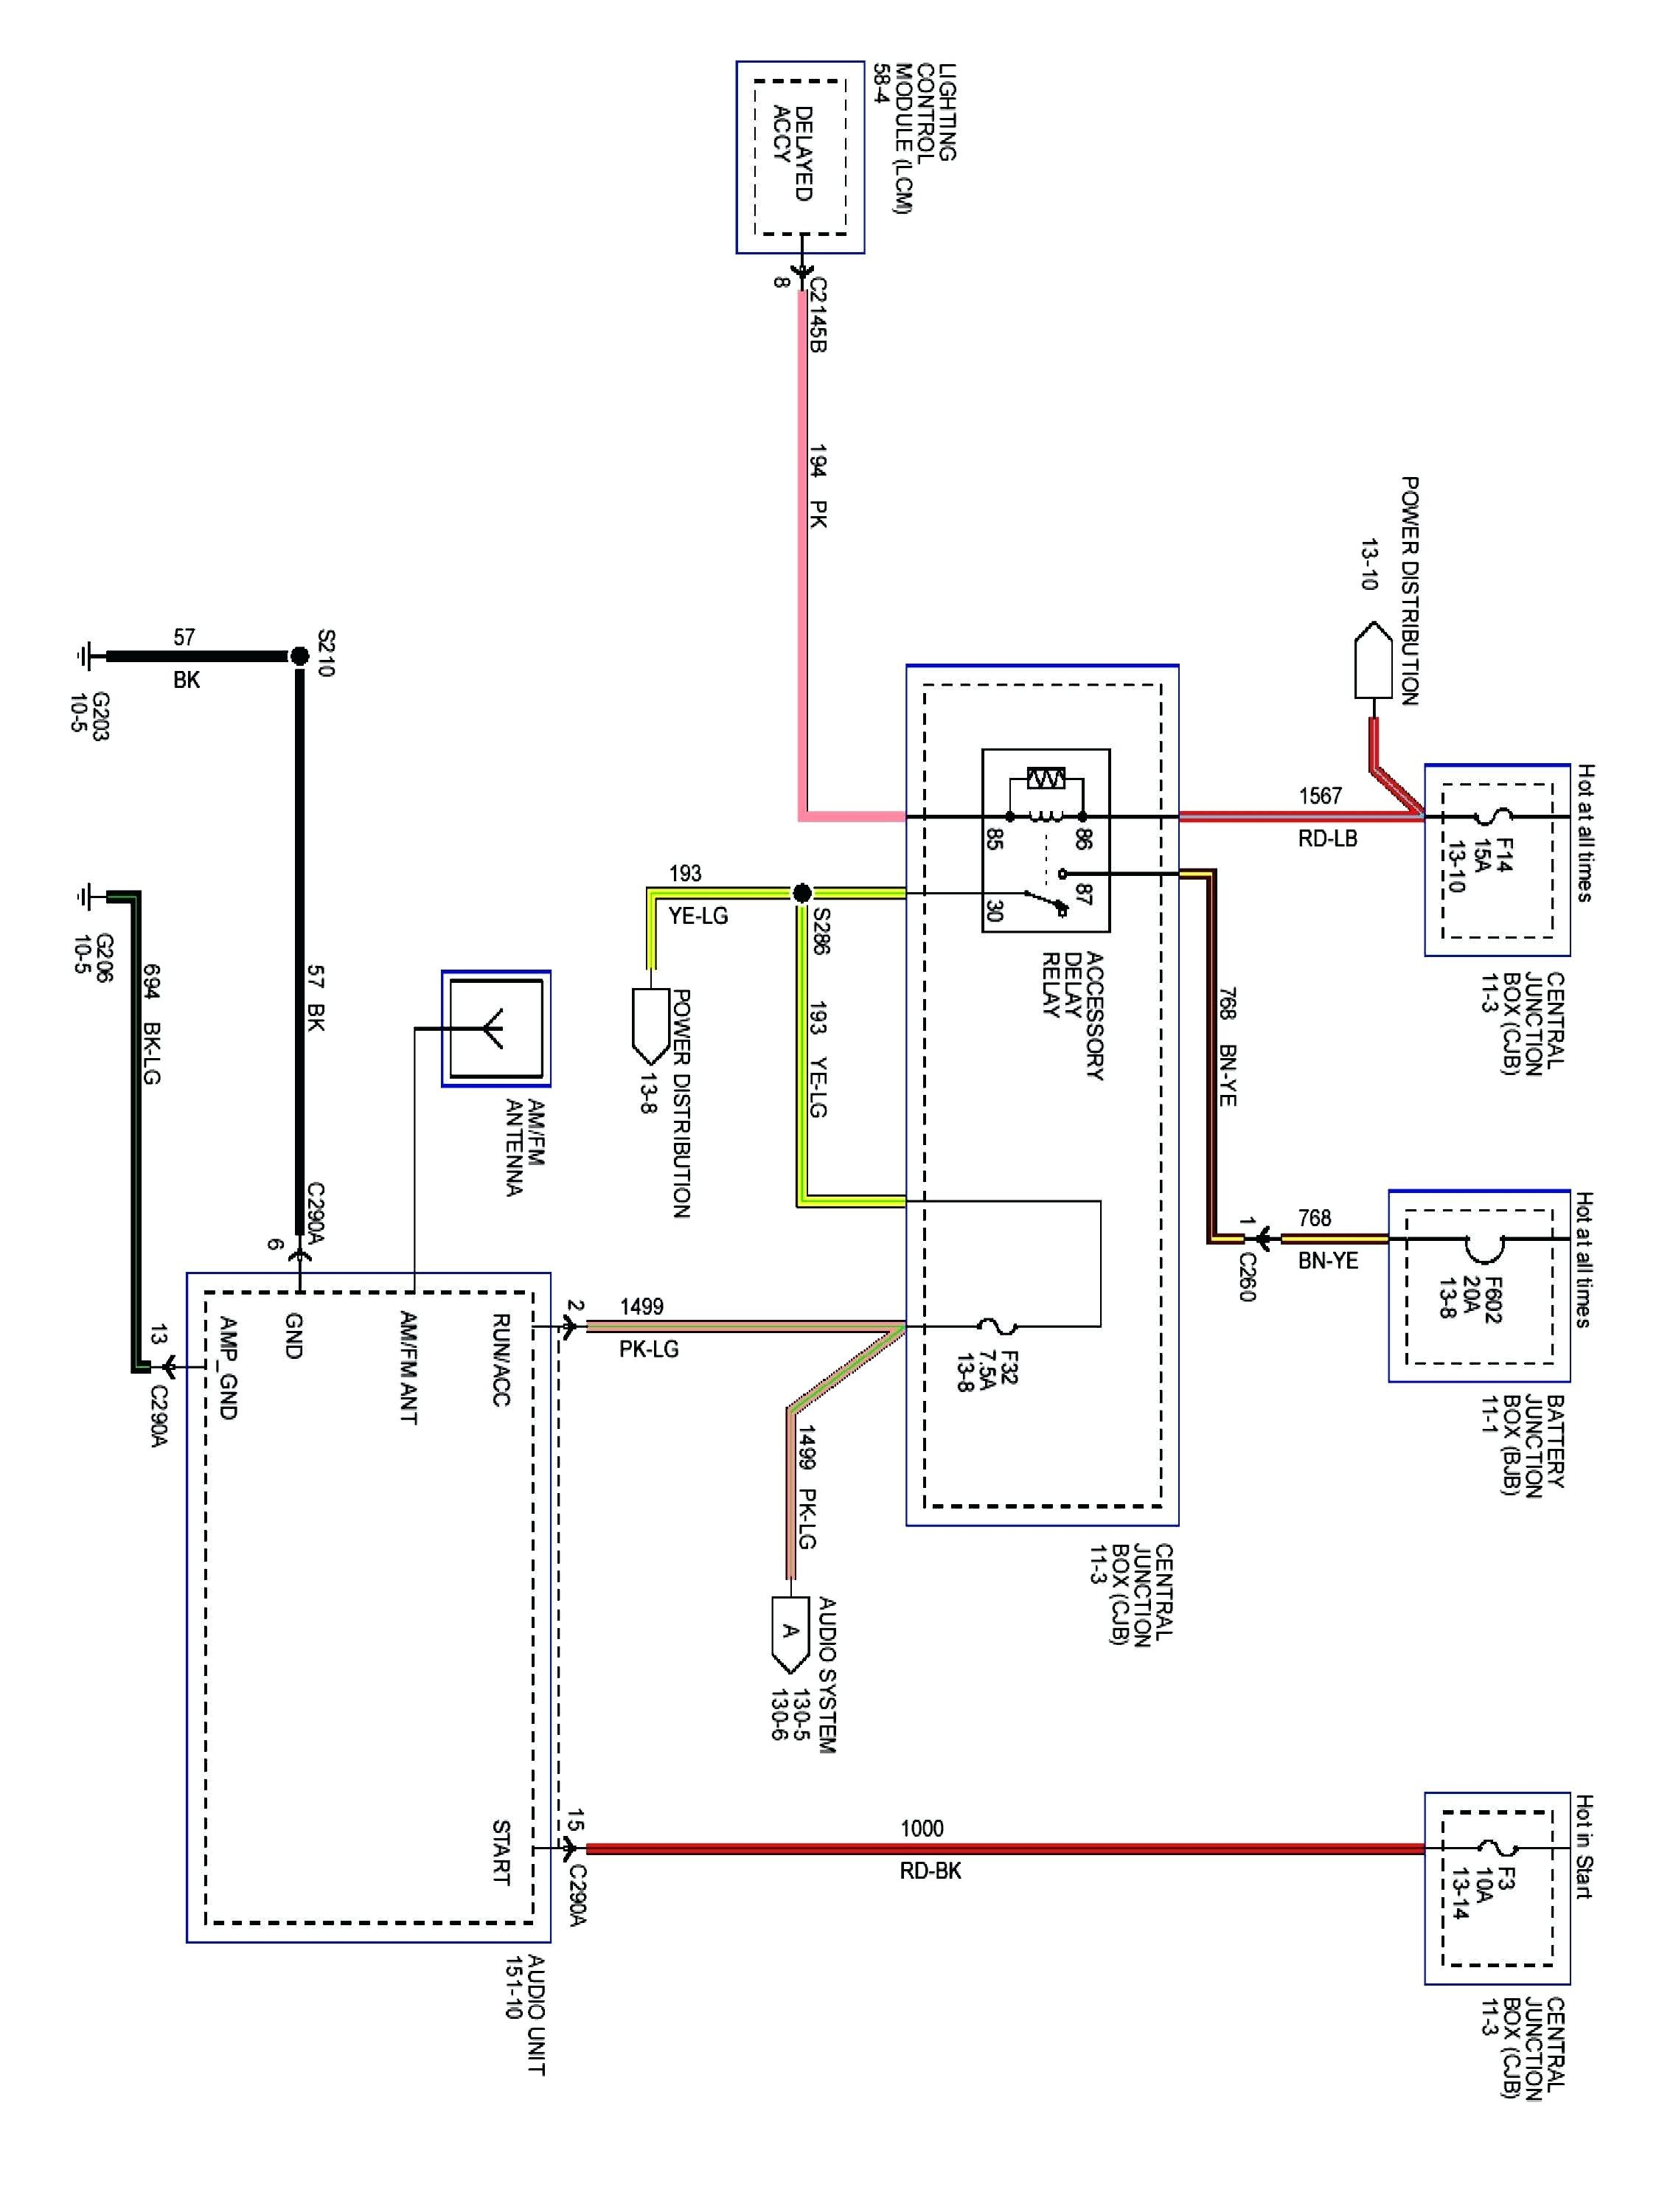 2000 lincoln town car fuel pump wiring diagram - wiring diagram  free-upgrade-b - free-upgrade-b.agriturismoduemadonne.it  agriturismoduemadonne.it